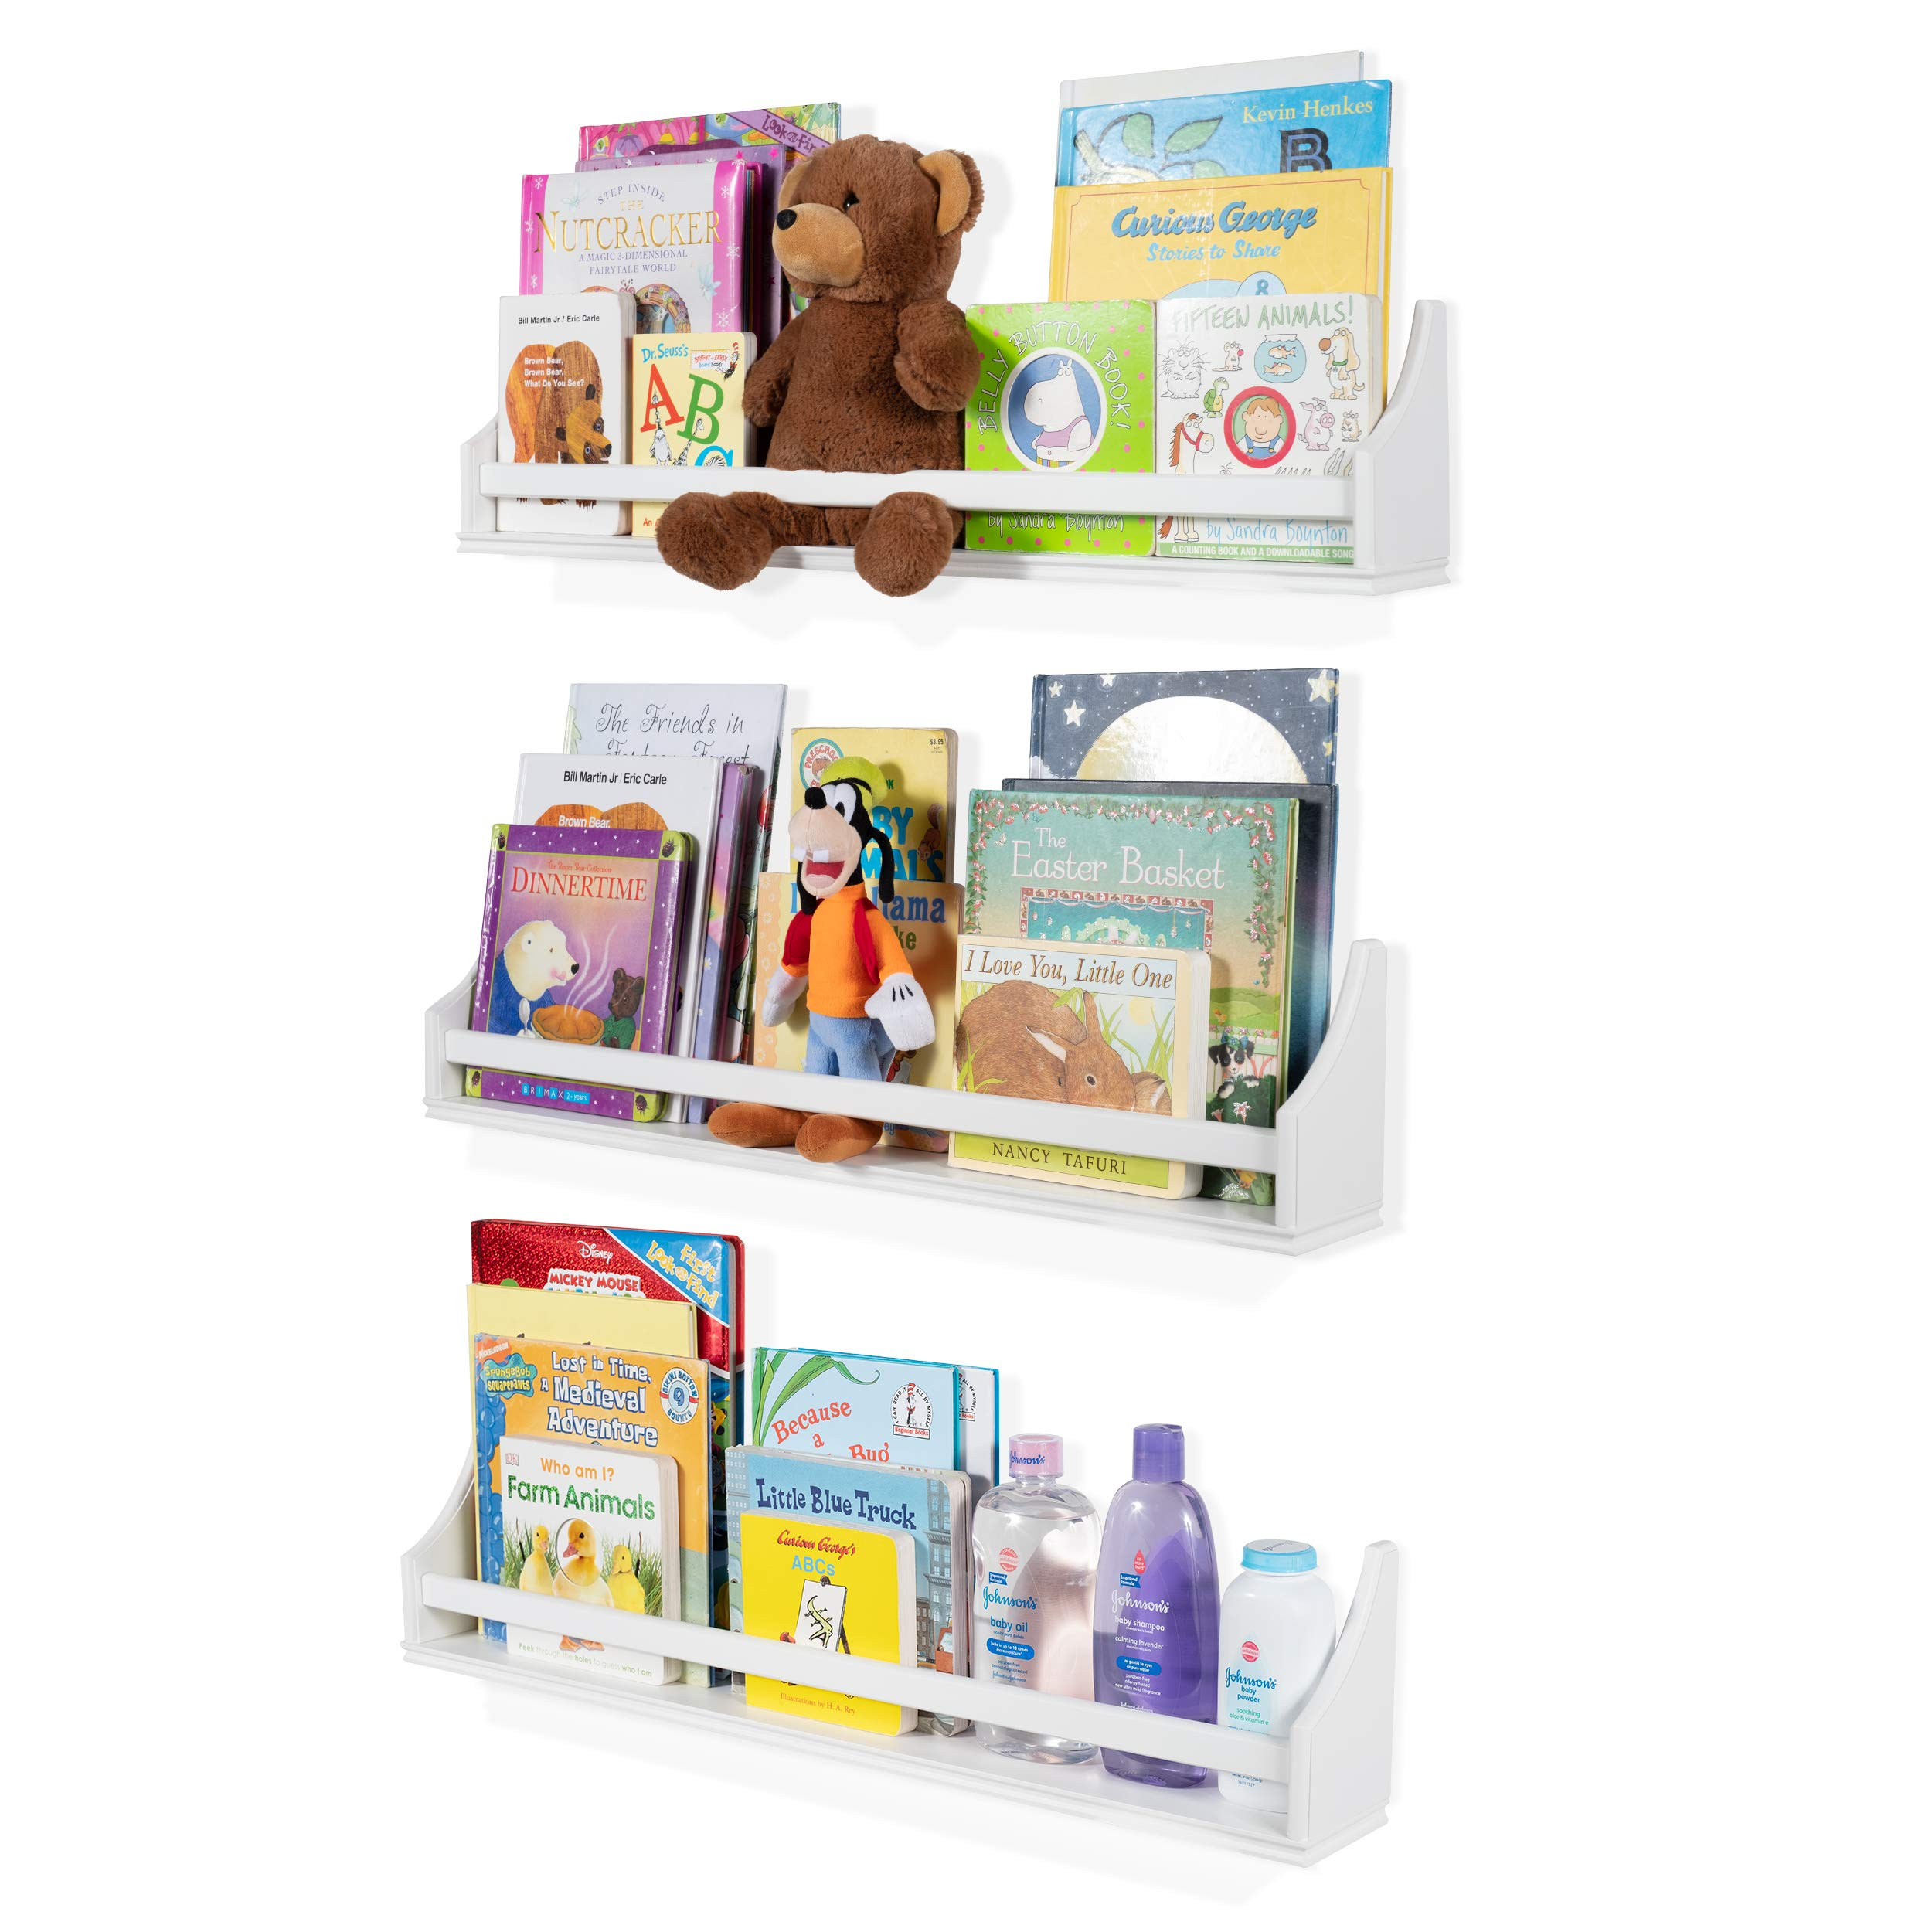 Nursery Décor Wall Shelves - 3 Shelf Set - White Long Crown Molding Floating Bookshelves for Baby & Kids Room, Book Organizer Storage Ledge, Display Holder for Toys, CDs, Baby Monitor by Brightmaison